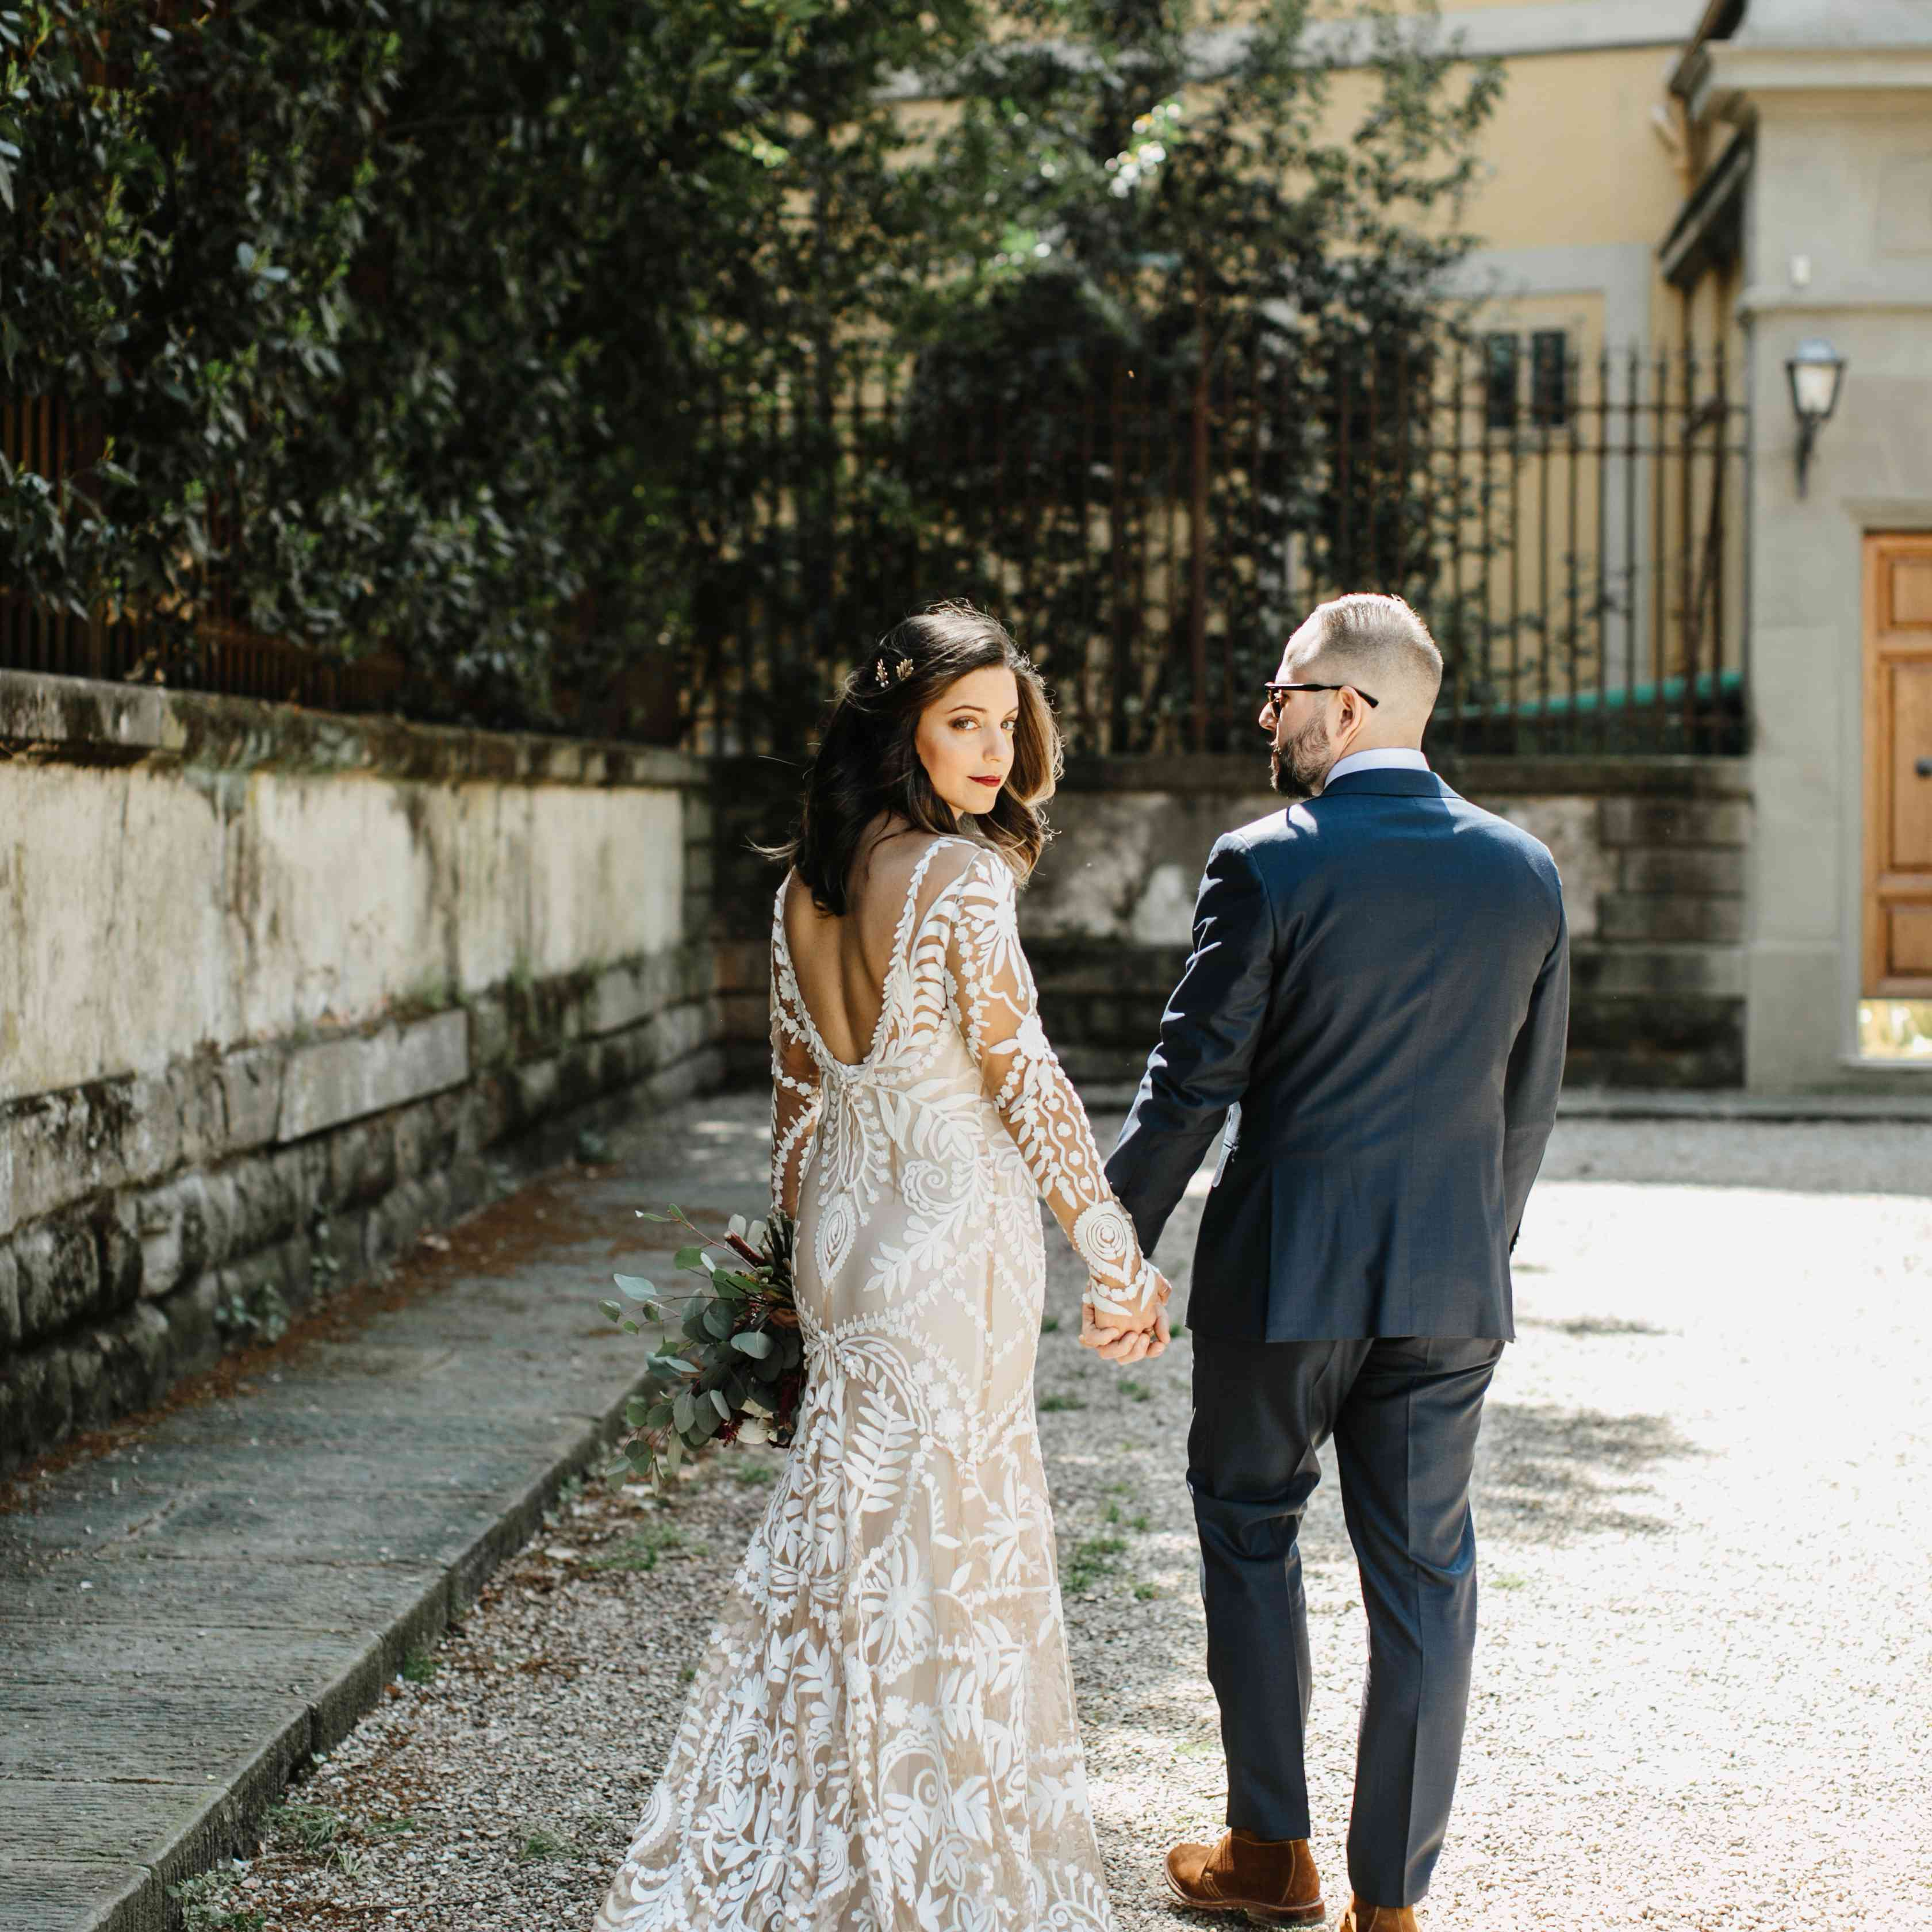 <p>bride and groom low back wedding dress</p><br><br>